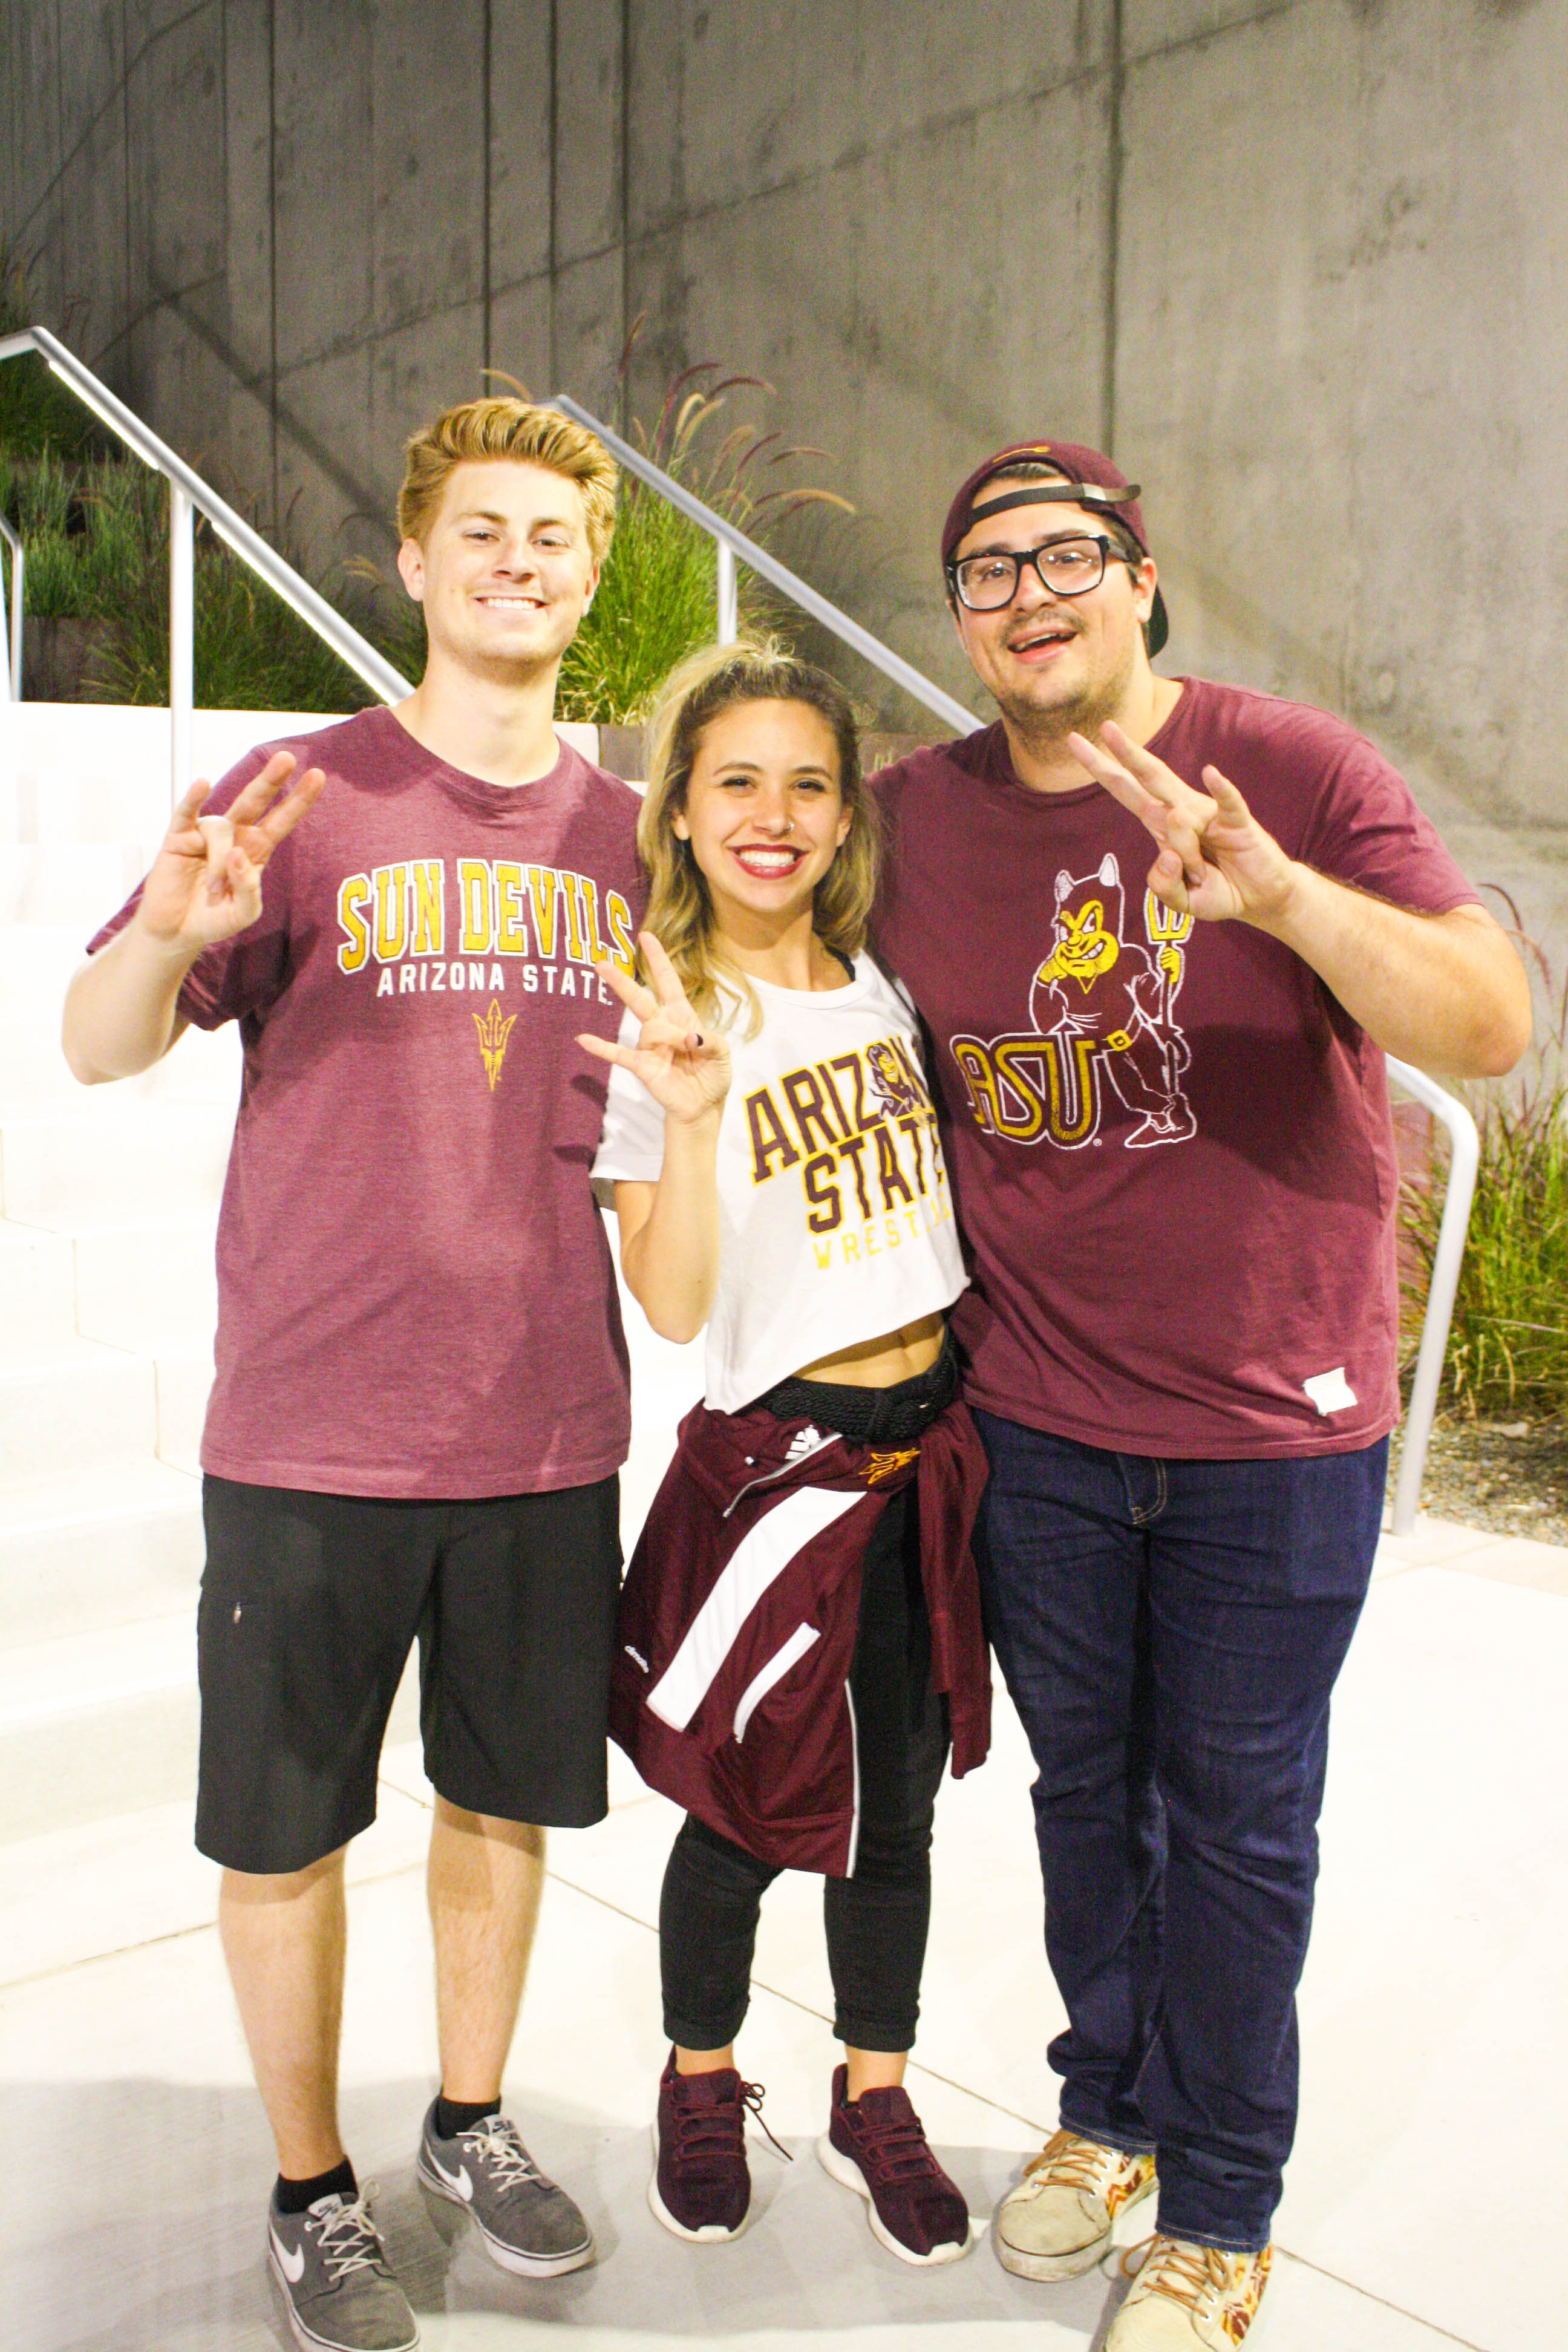 ASU fans. The games are so fun - just as any of the ASU fans!